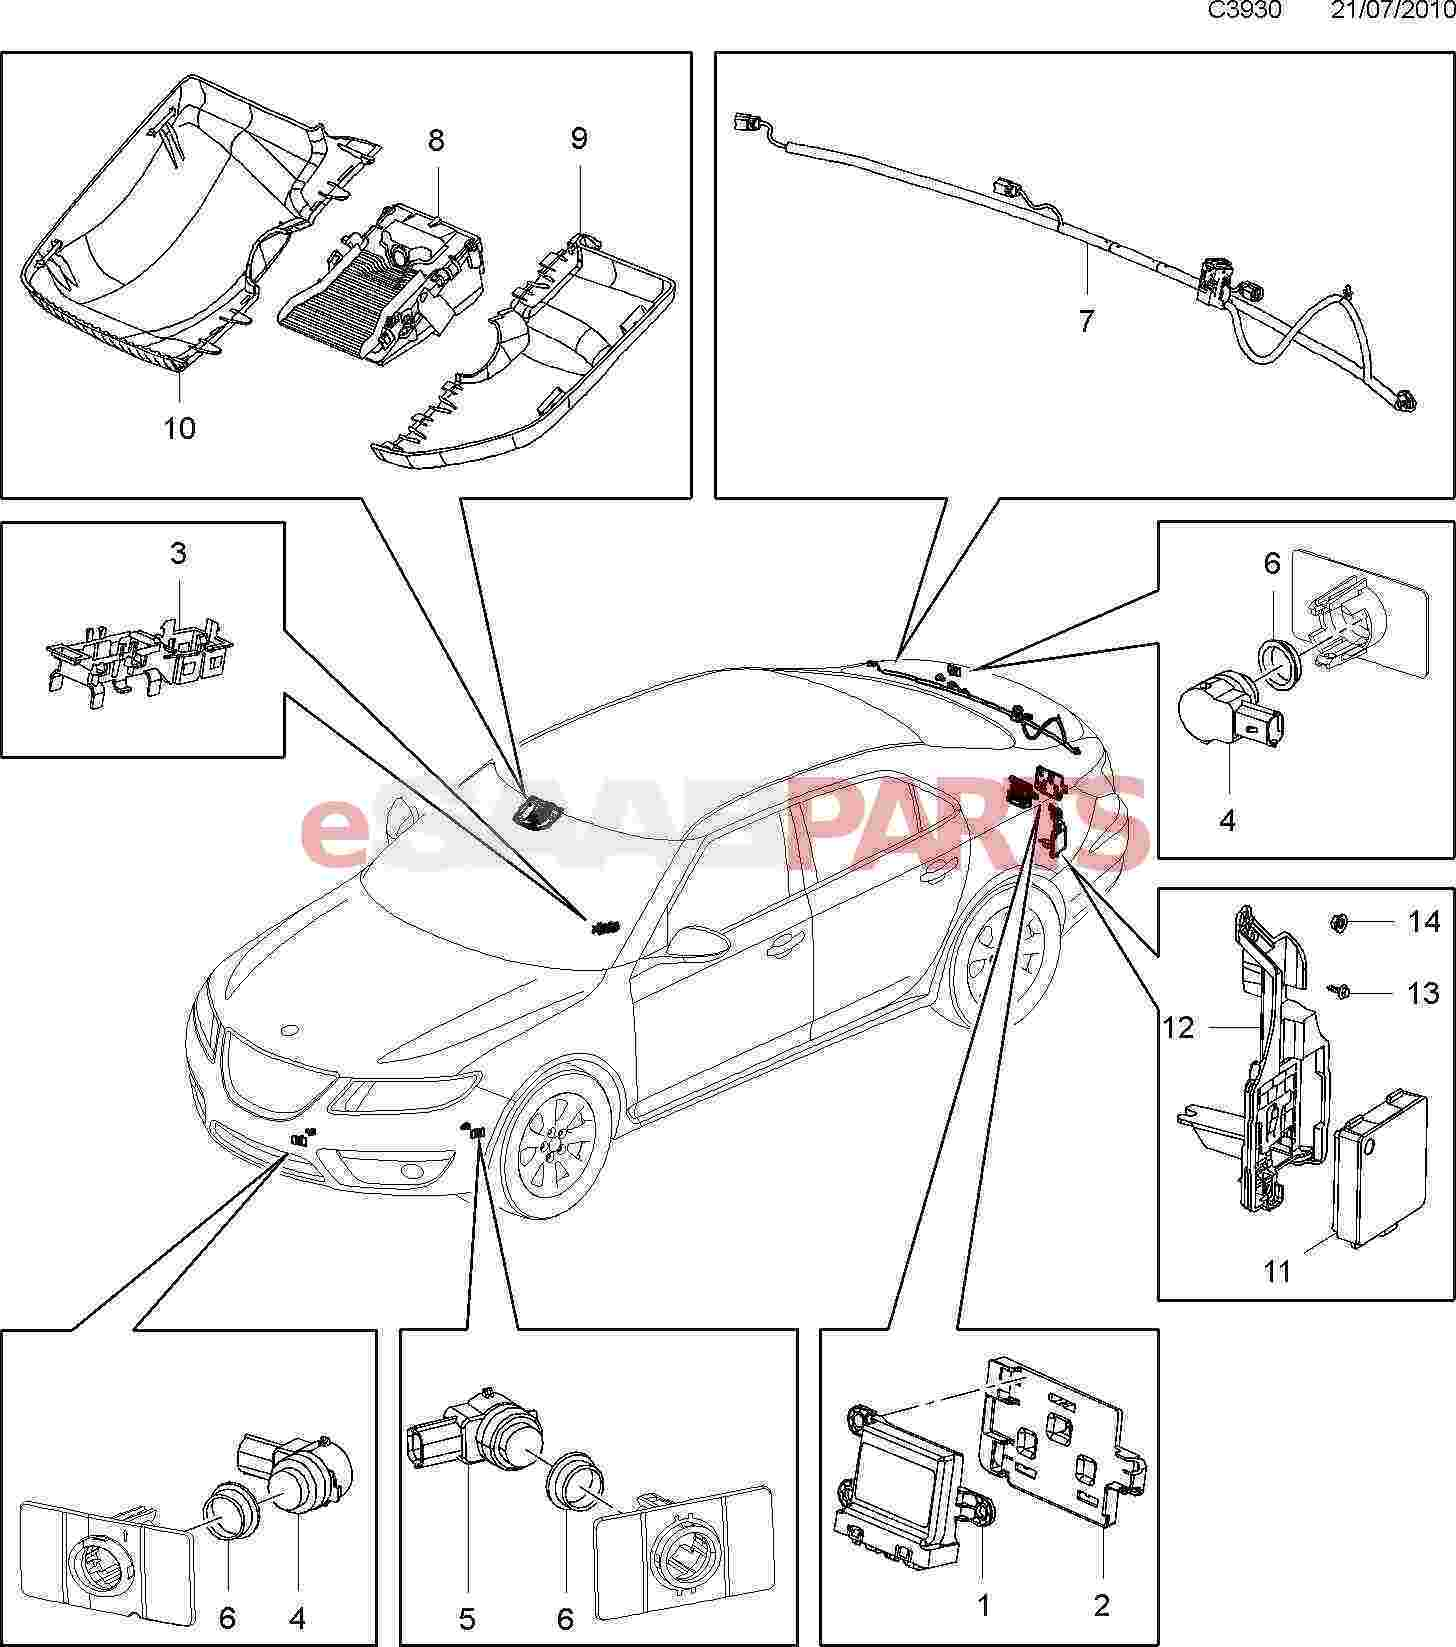 DIAGRAM] Wiring Diagram Saab 95 Parking Assistance FULL Version HD Quality Parking  Assistance - BIOLOGYDIAGRAMS.CIGARREN-ULLRICH.DEcigarren-ullrich.de